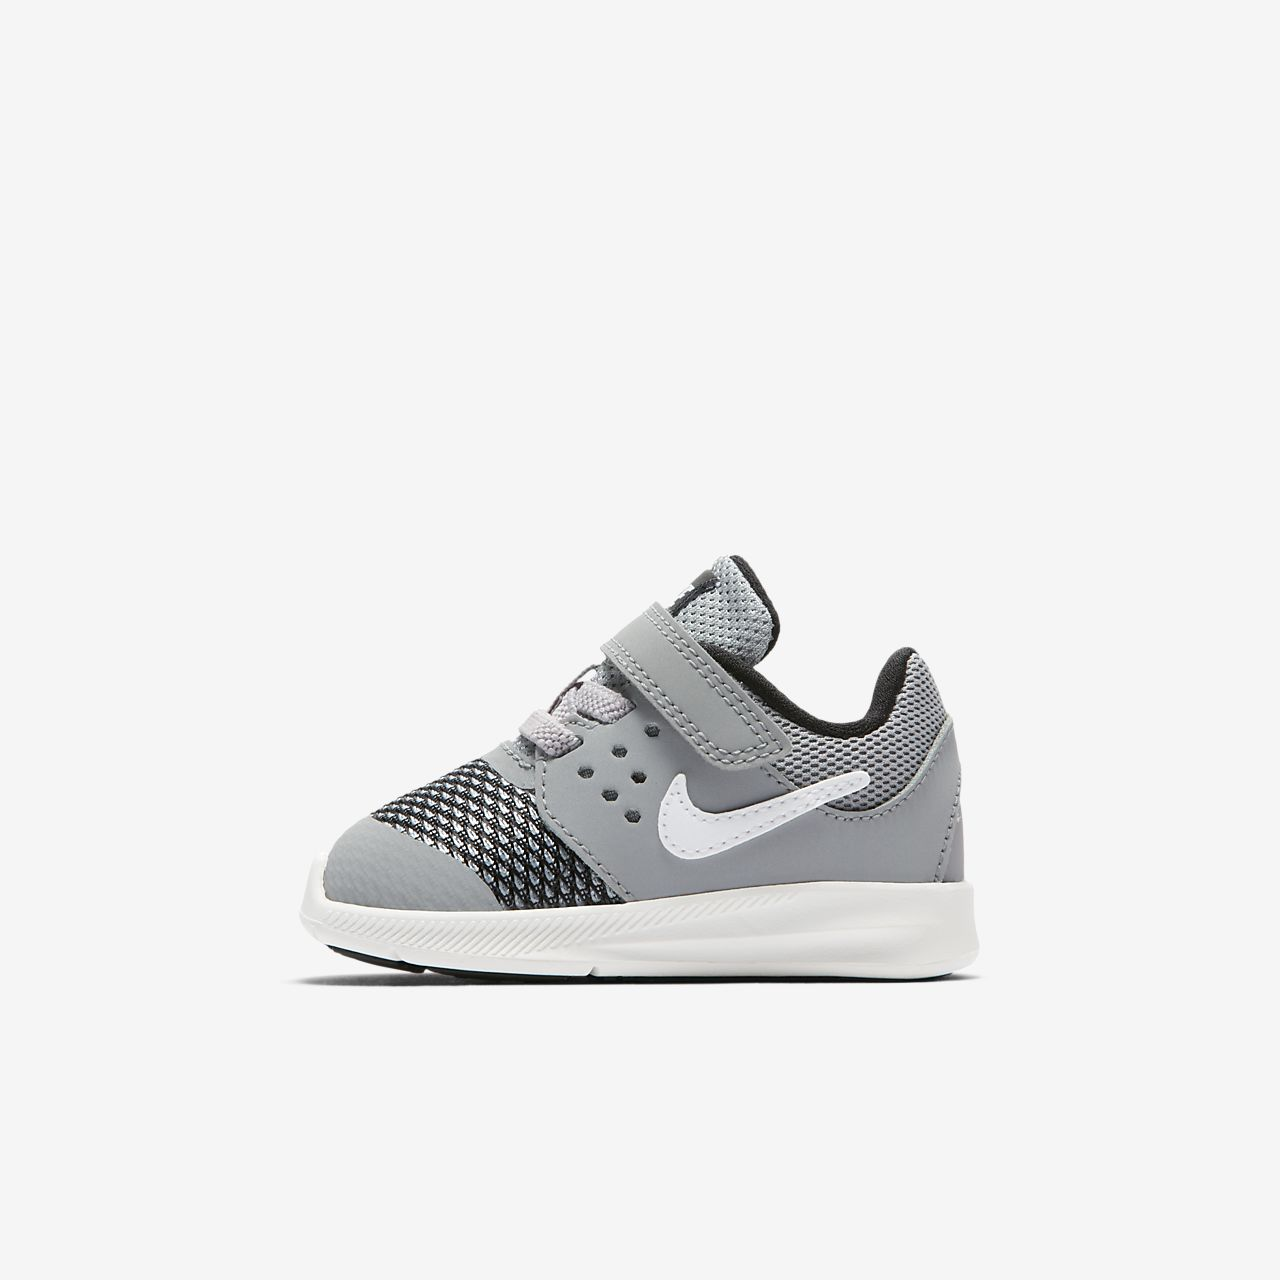 ... Nike Downshifter 7 Baby & Toddler Shoe